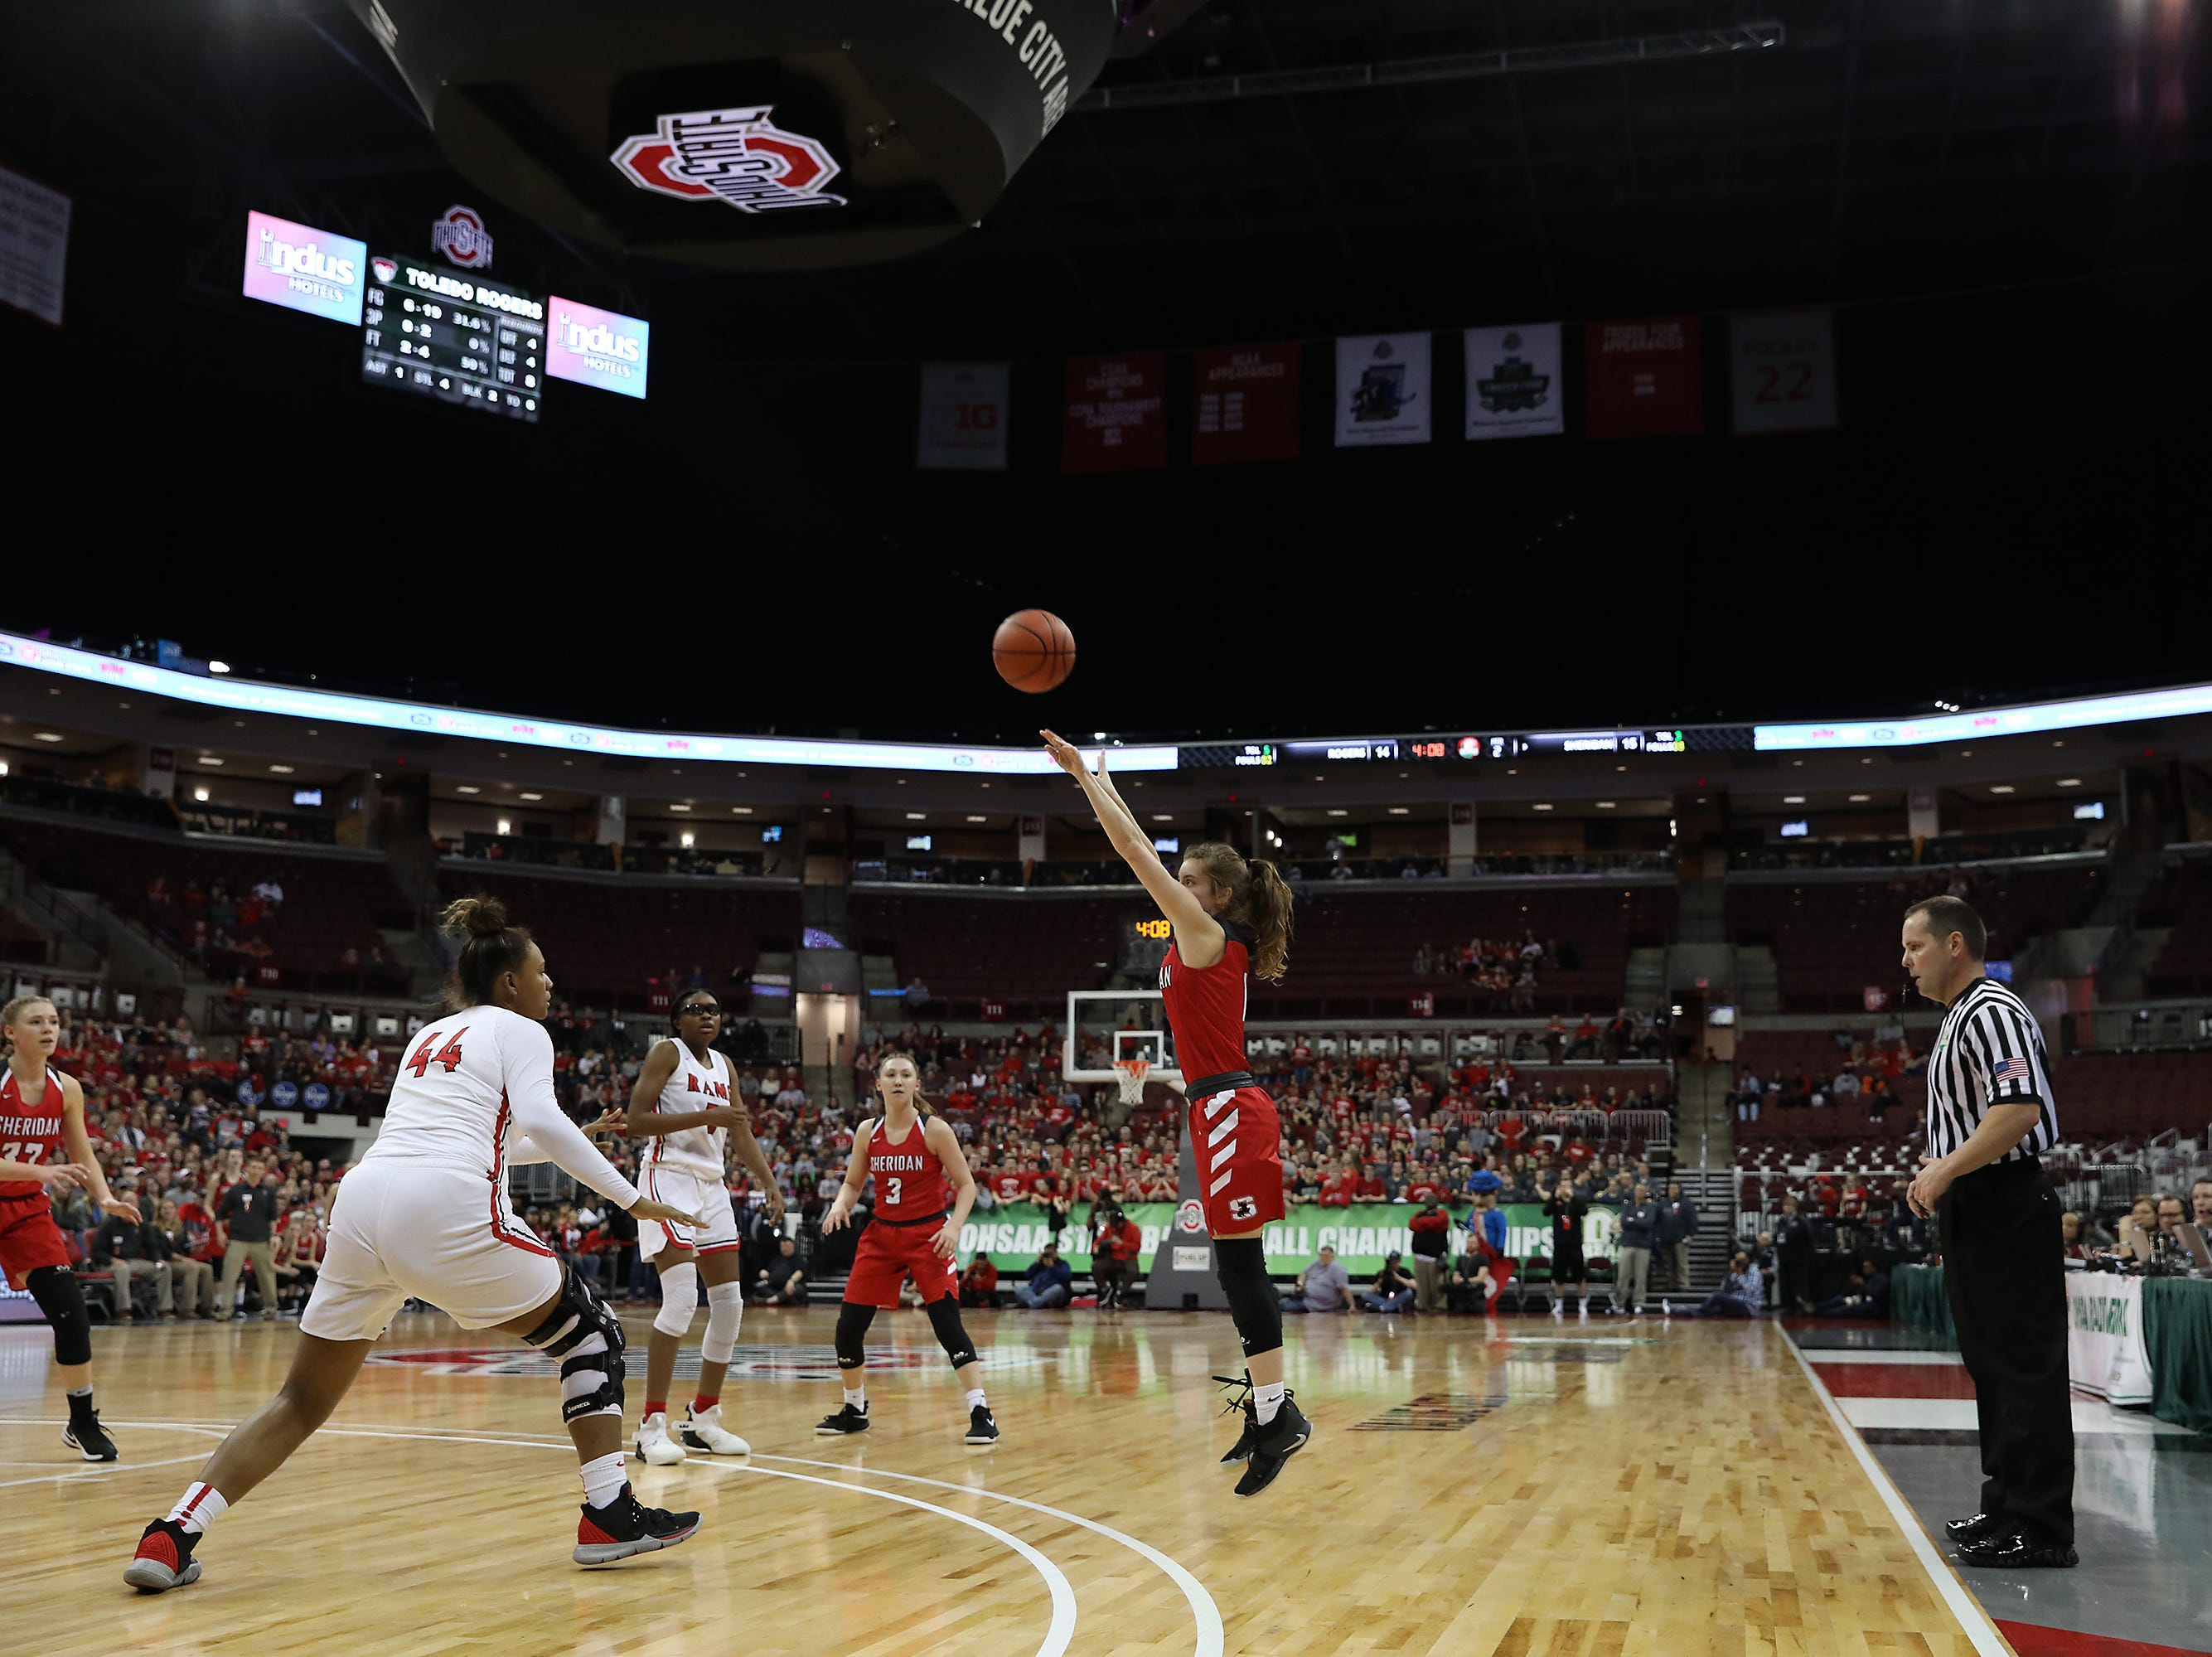 Sheridan's Aubrie White puts up a three against Toledo Rogers during the DII state semis in Columbus on Thursday.